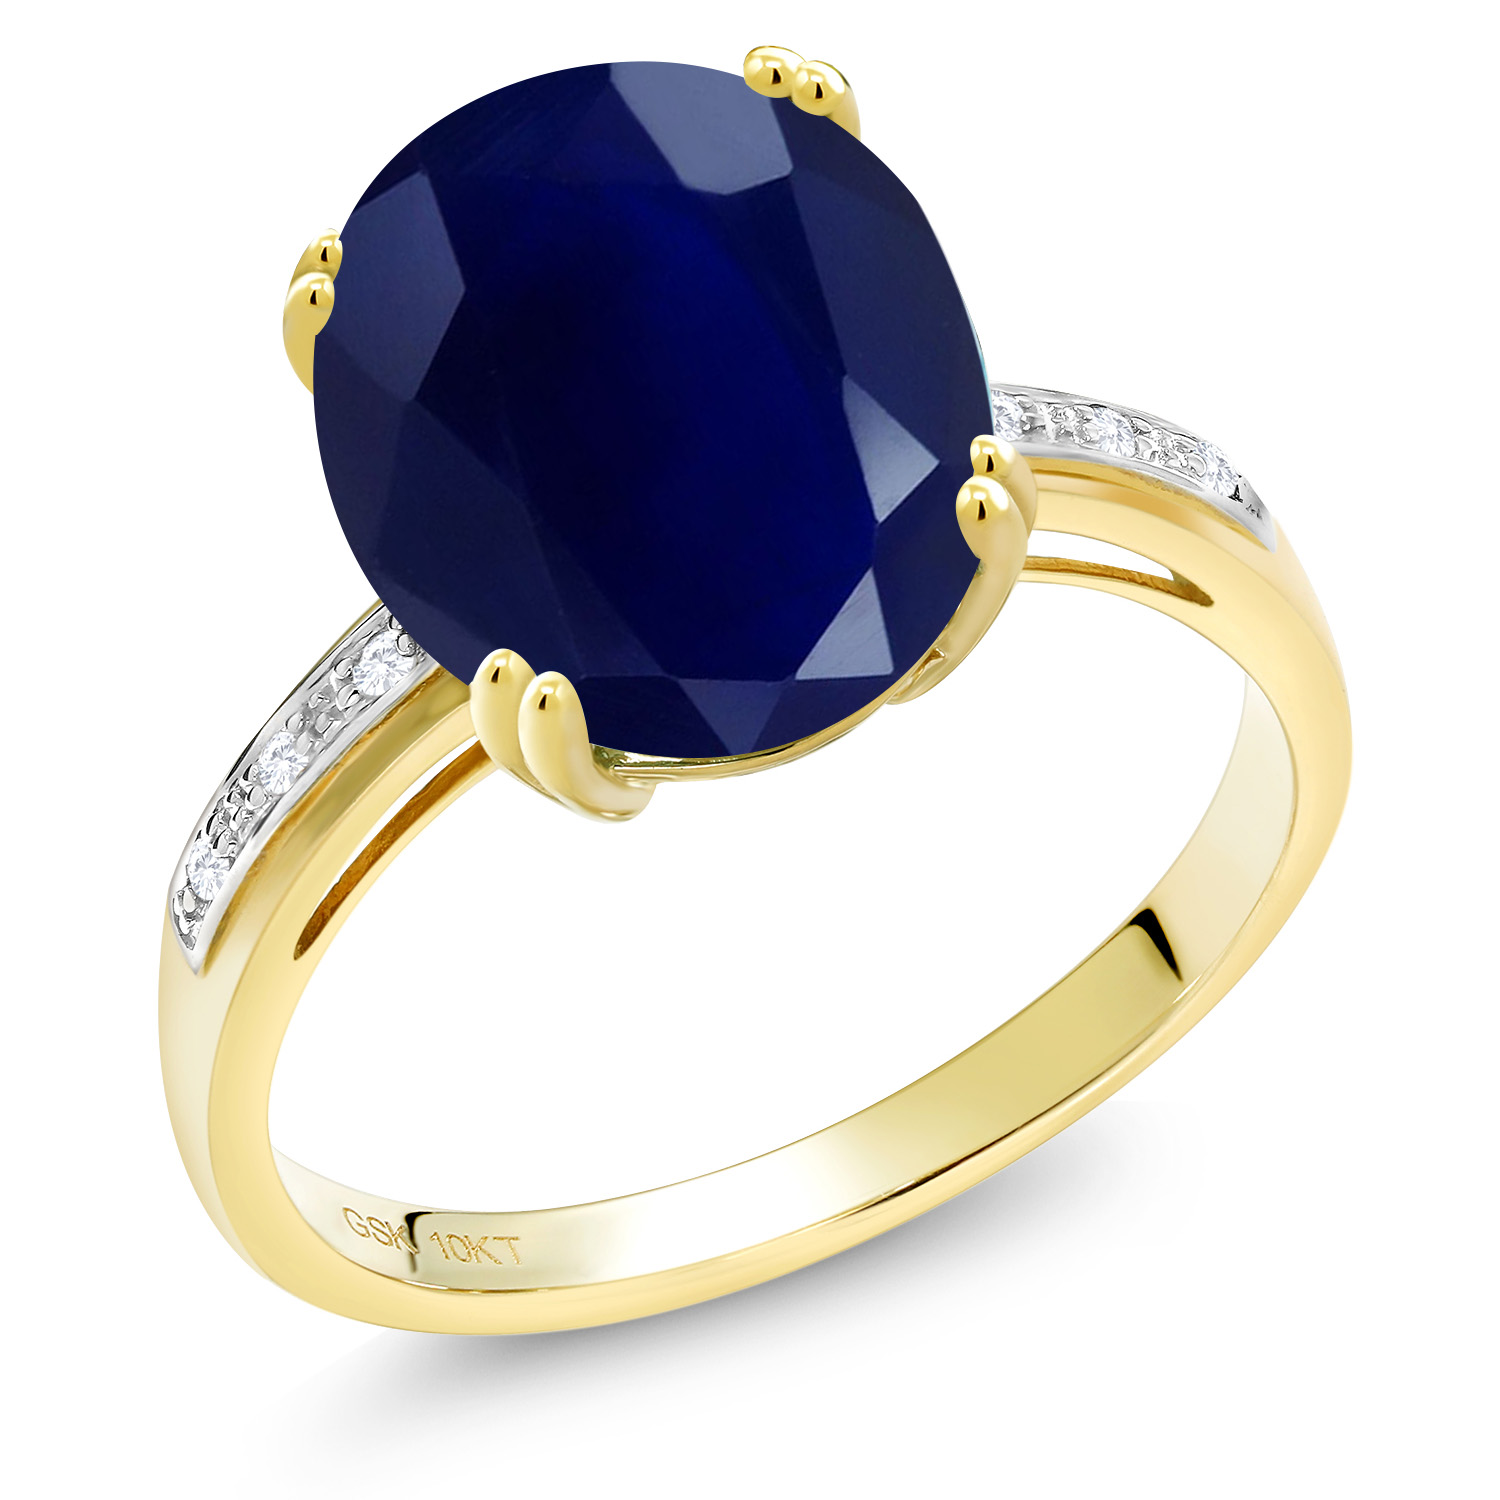 10K Yellow Gold 5.04 Ct Oval Blue Sapphire White Diamond Accent Solitaire Ring